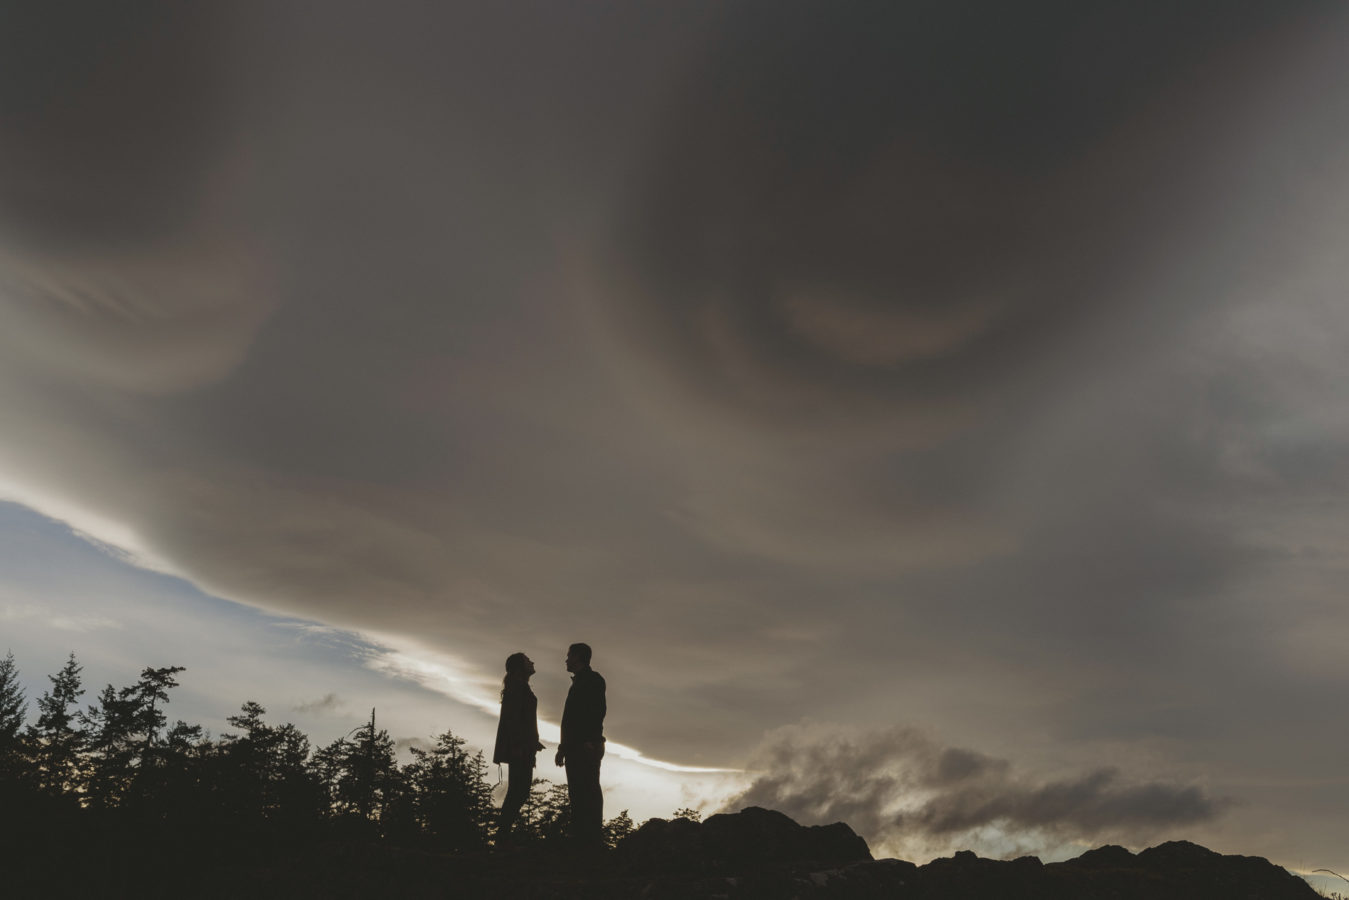 man and woman standing on a rocky bluff with a dark dramatic sky behind them